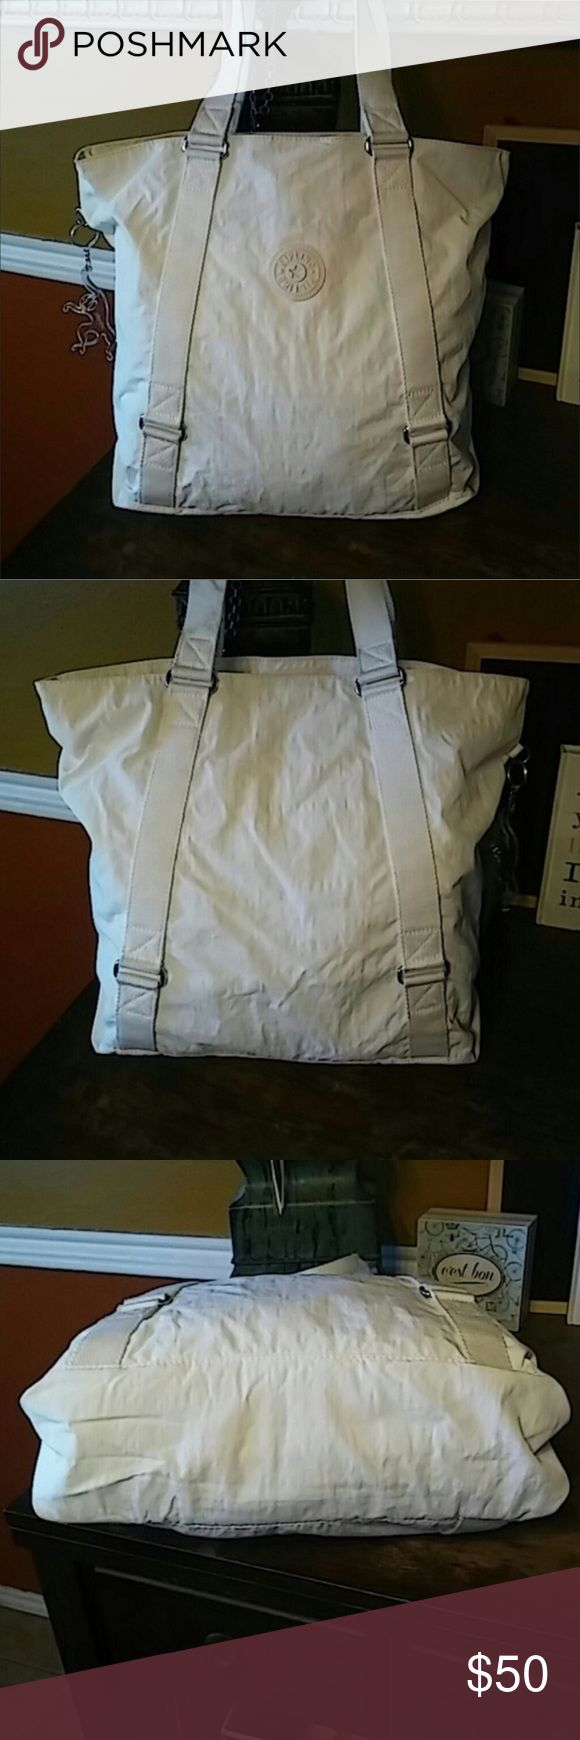 """Kipling Work Tote Super functional tote. One strap has gotten a little dirty in storage and a small area has a little discoloration that is very faint on the back. Zipper compartment in the center. Velcro closure. Easy clean wipeable material. 9"""" strap drop. 16x13x5. Should fit most laptops, tablets or ipads. Kipling Bags Totes"""